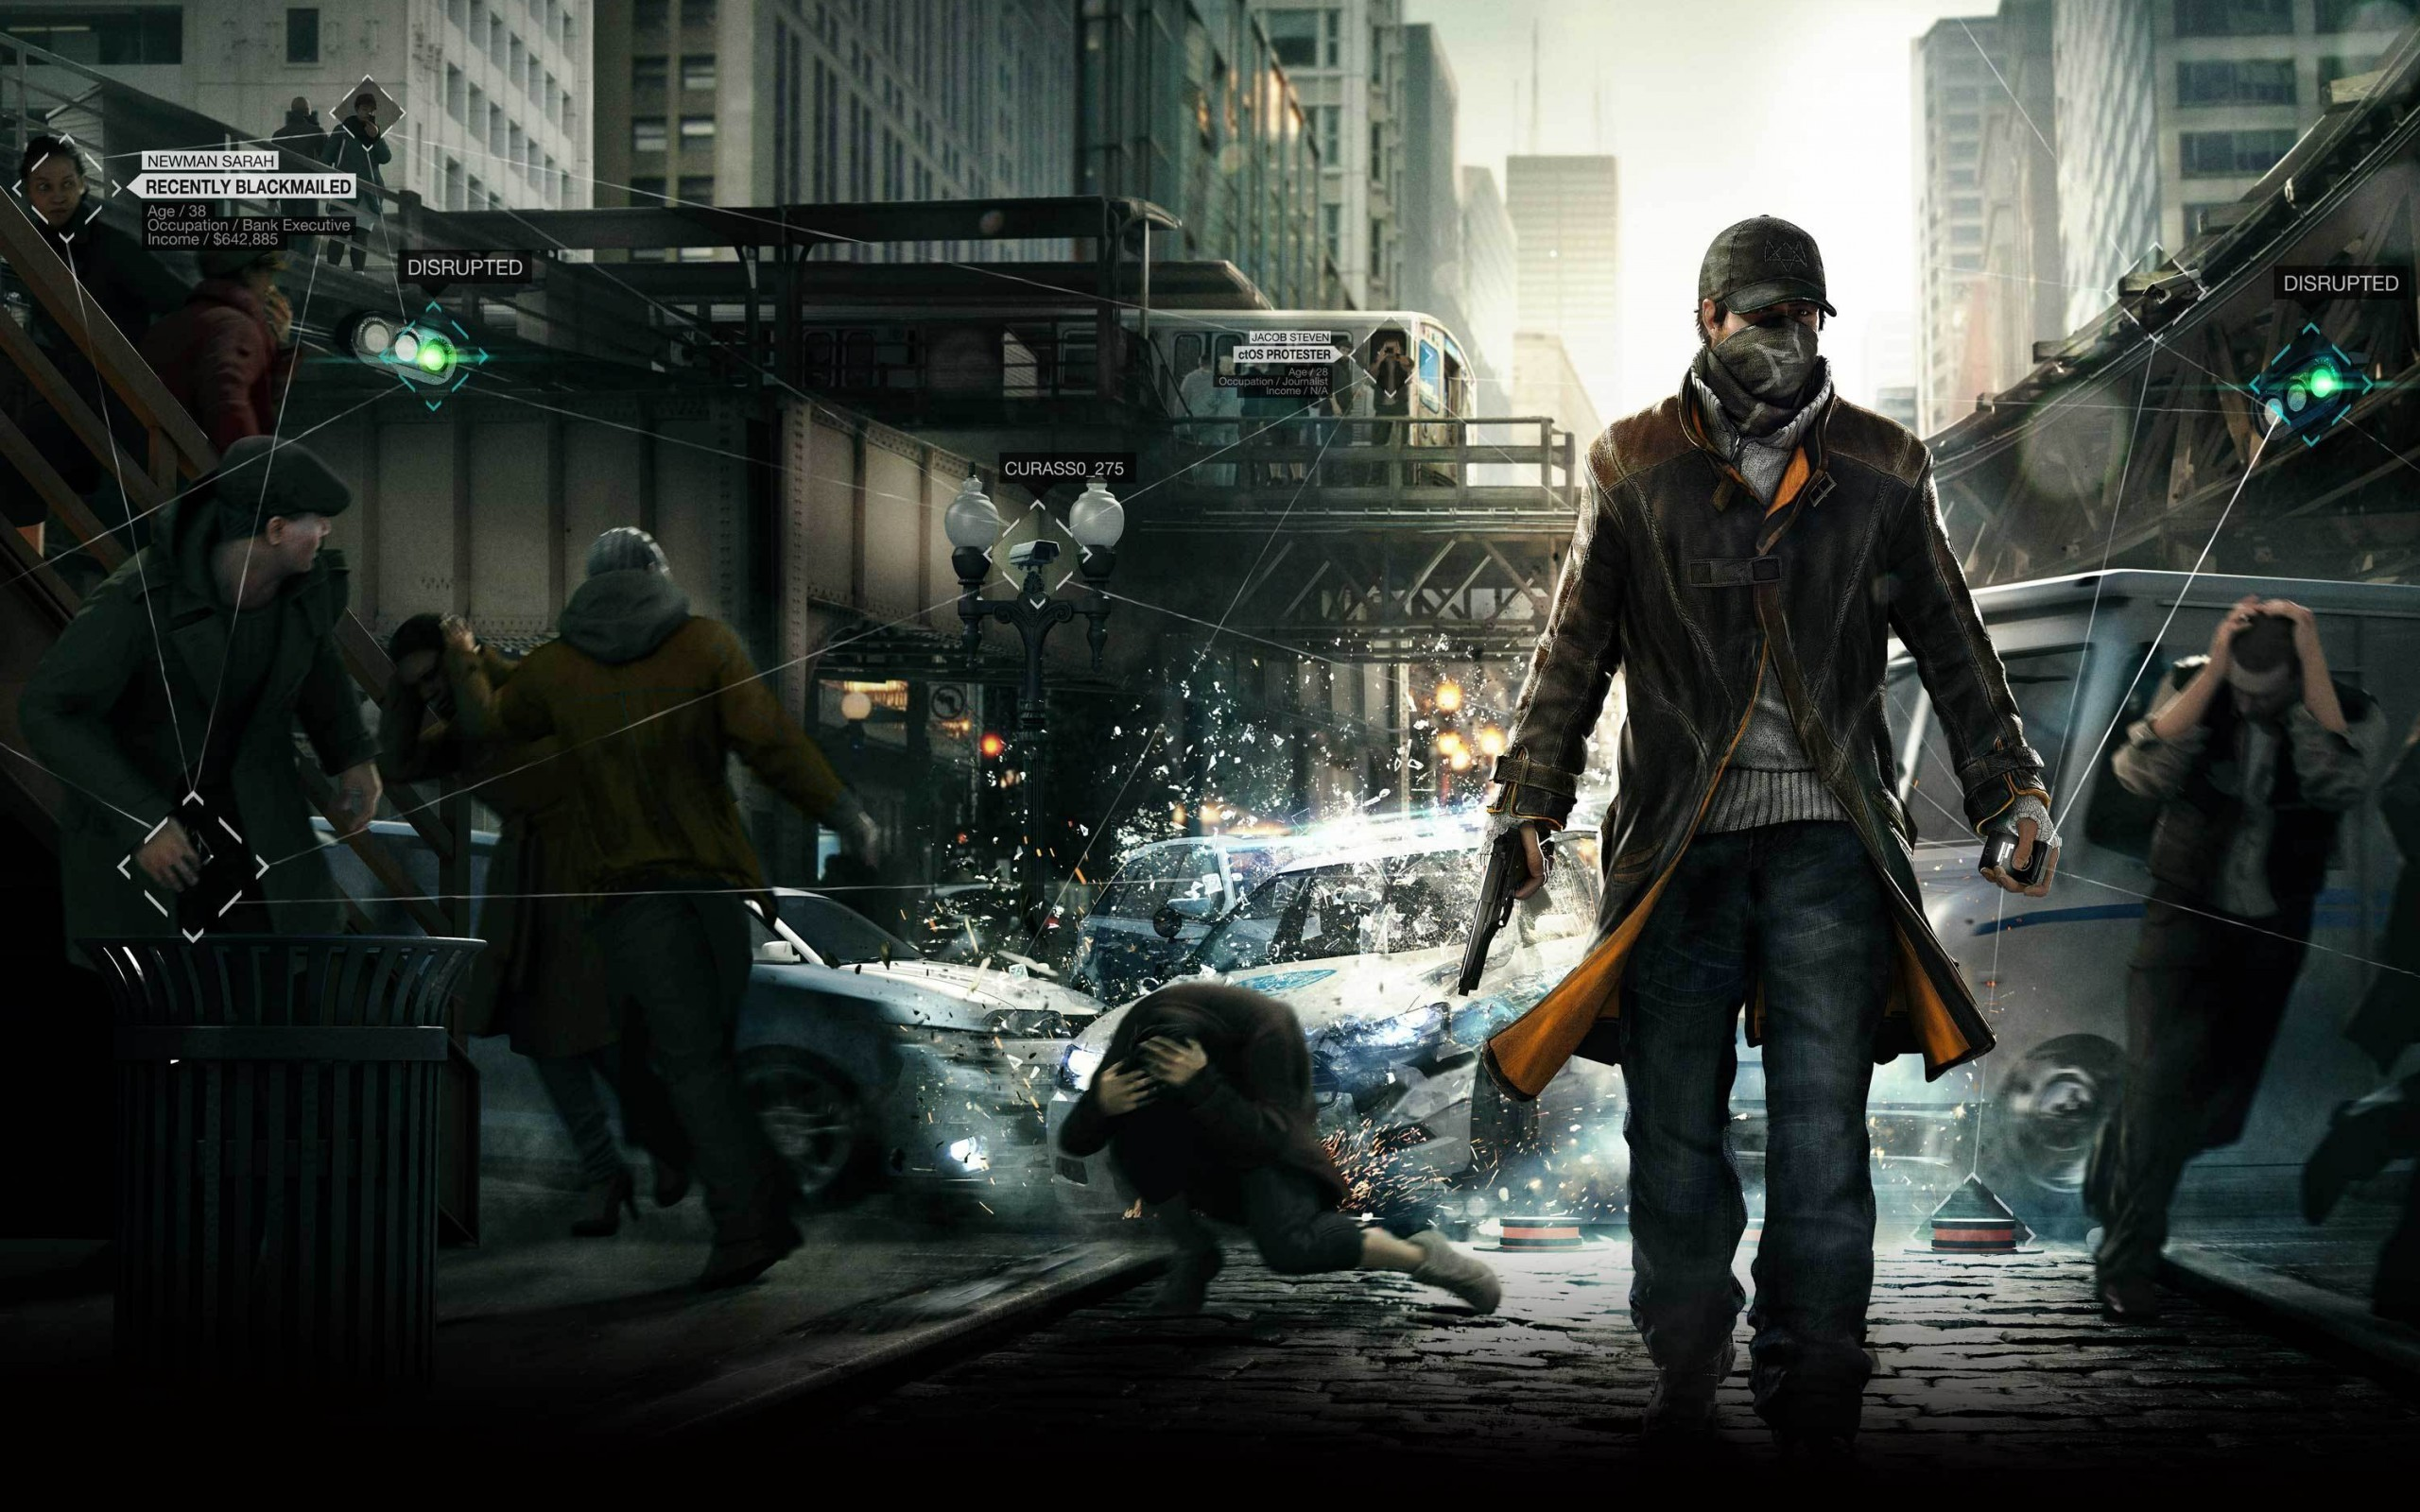 Watch Dogs wallpaper | 2560x1600 | #79166